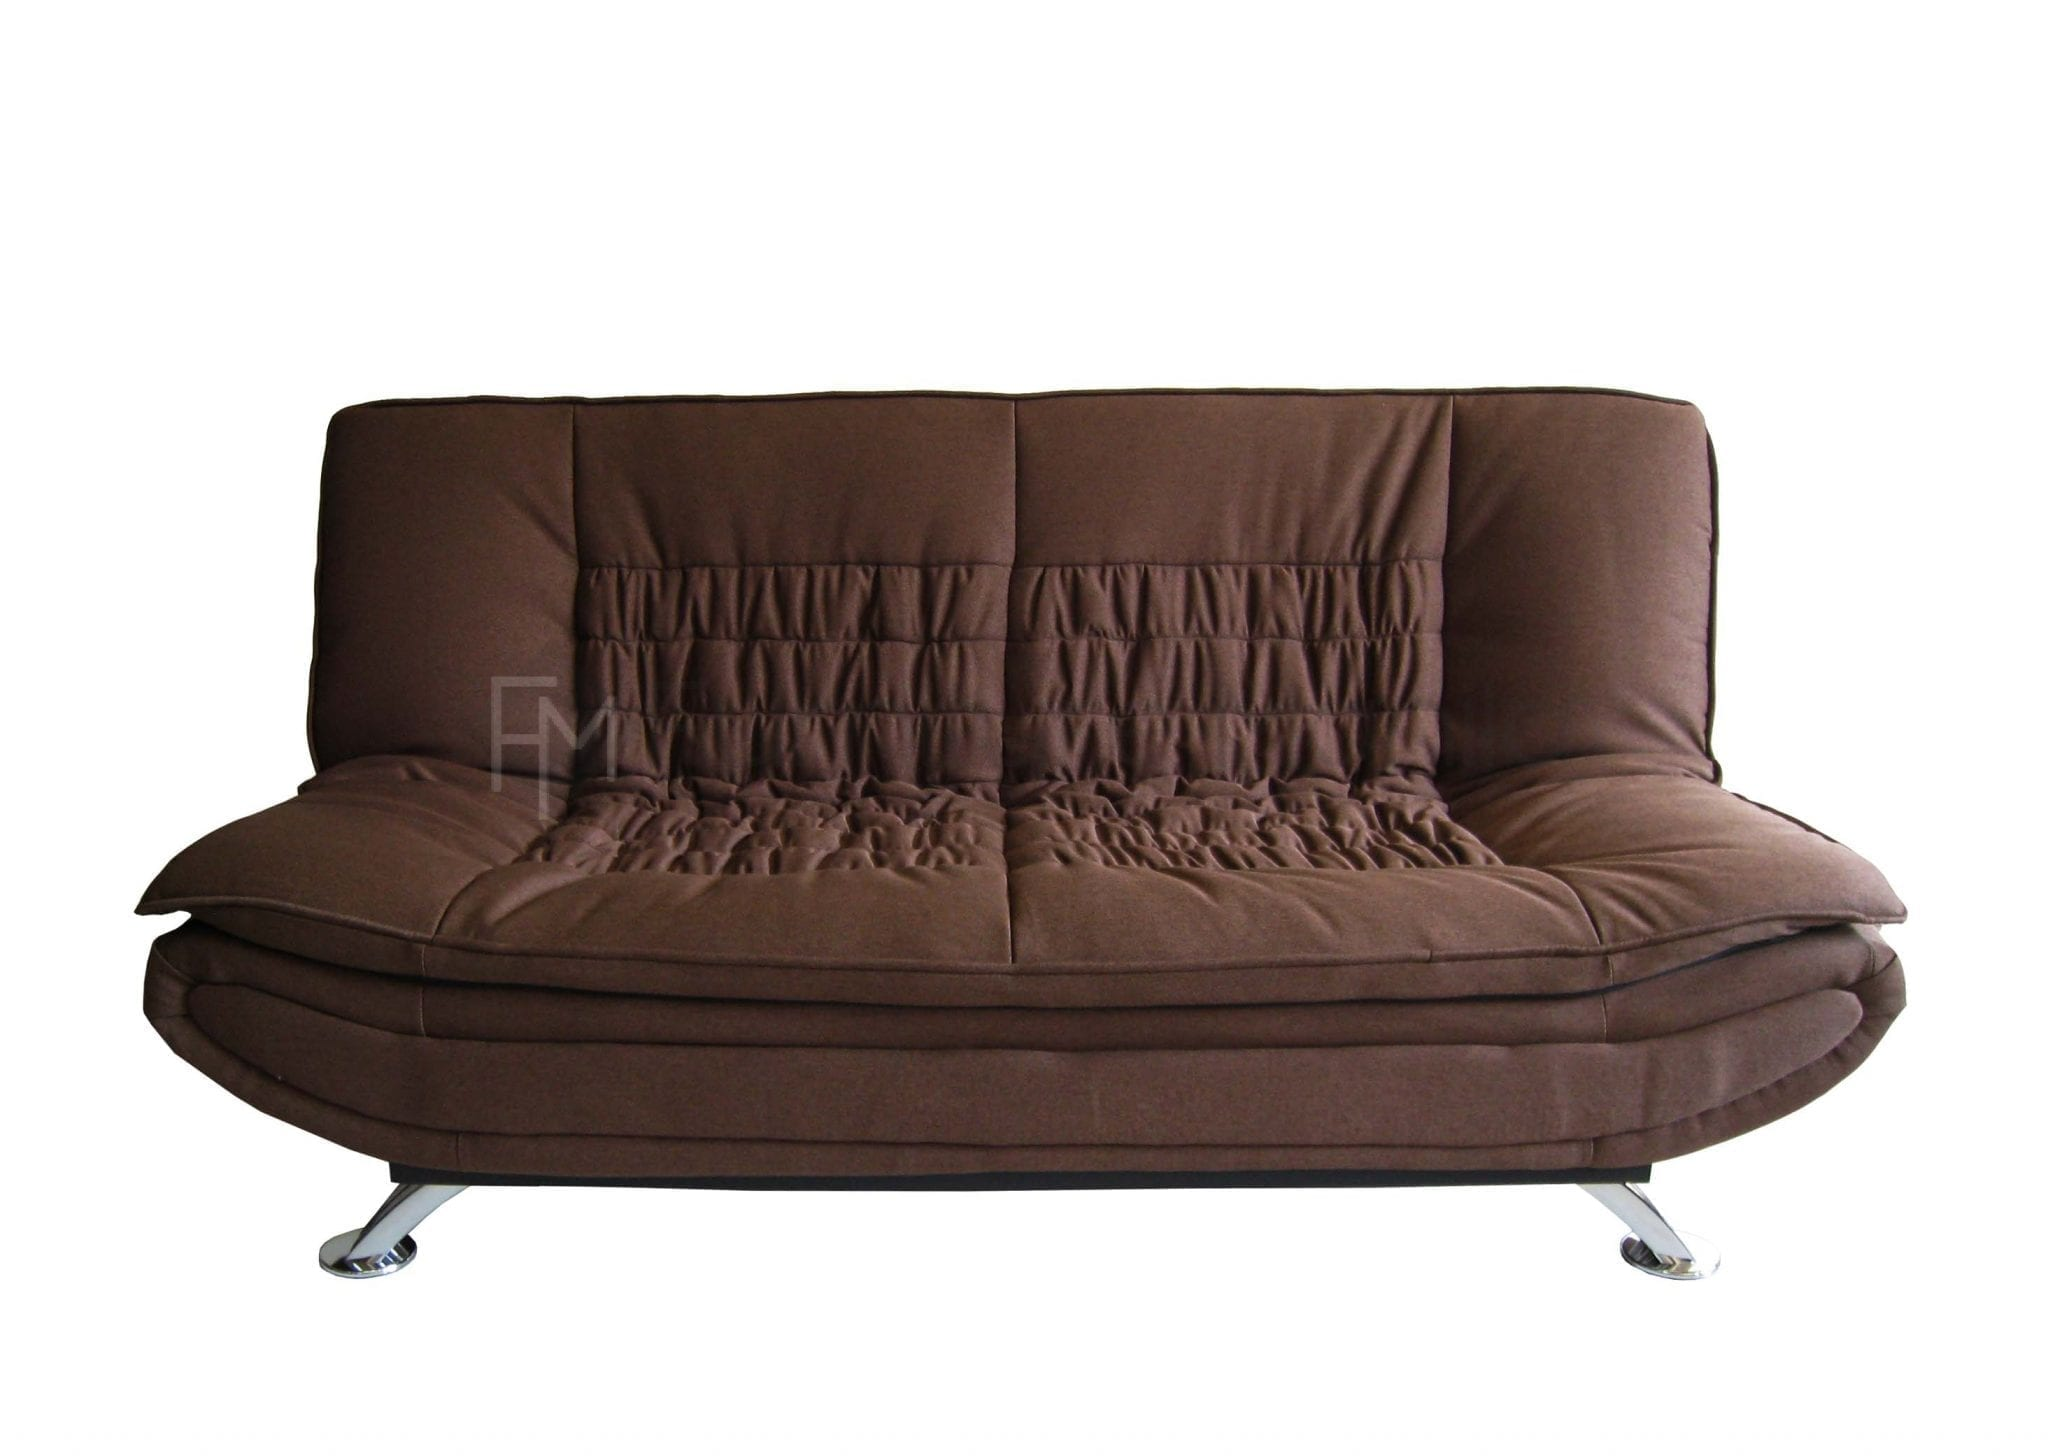 A077 Sofabed Home Office Furniture Philippines